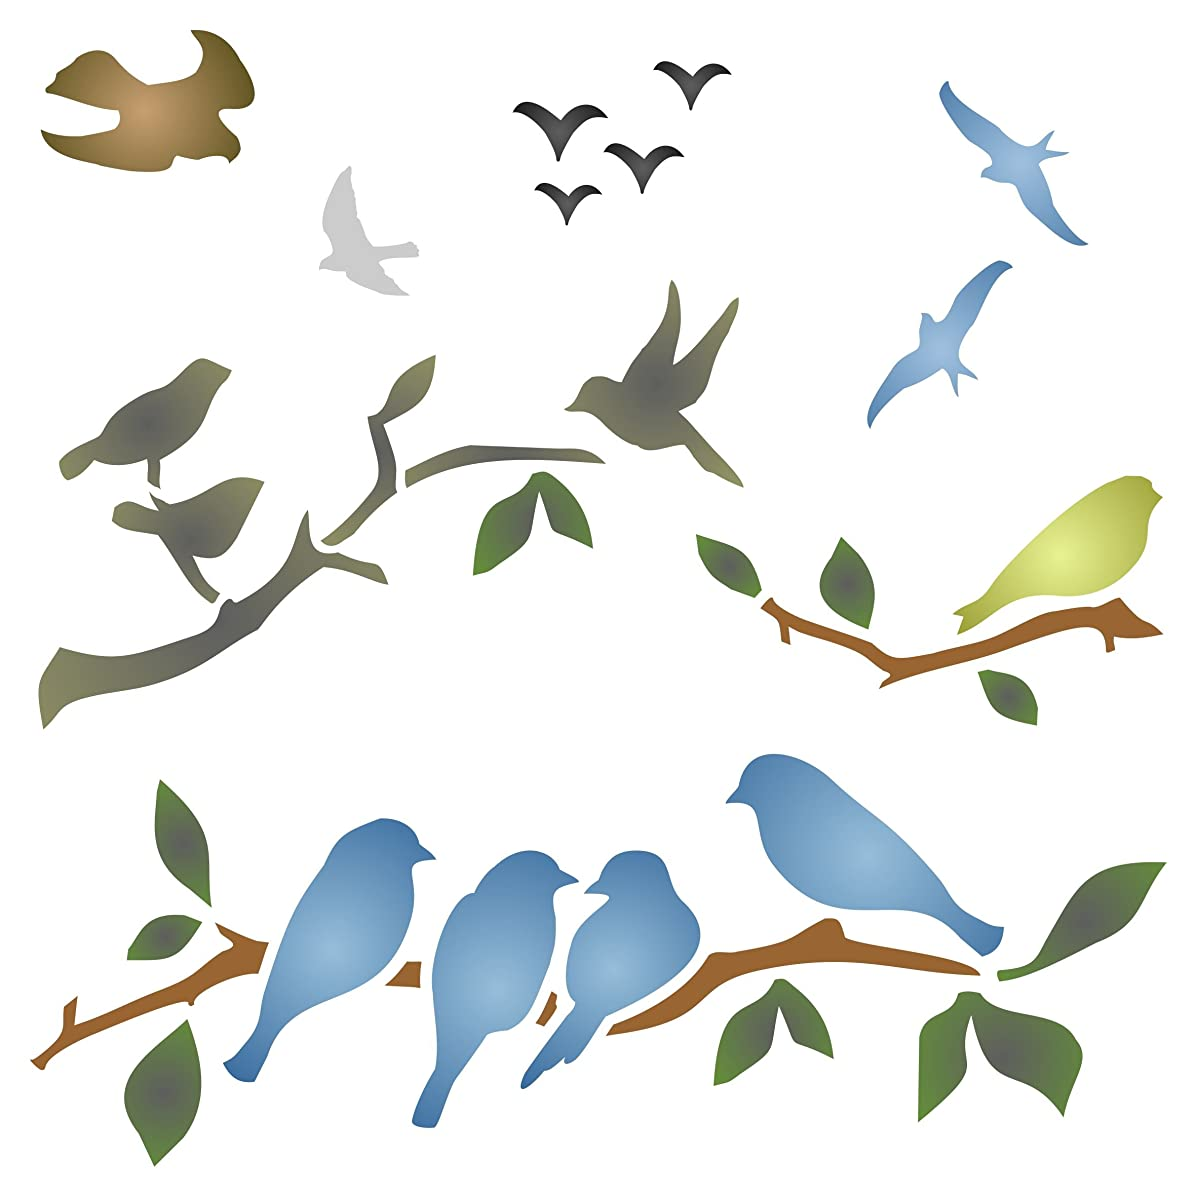 Birds on Branches Stencil - 6.5 x 6.5 inch (M) - Reusable Bird Branch Silhouette Stencils for Painting - Use on Walls, Floors, Fabrics, Glass, Wood, and More…